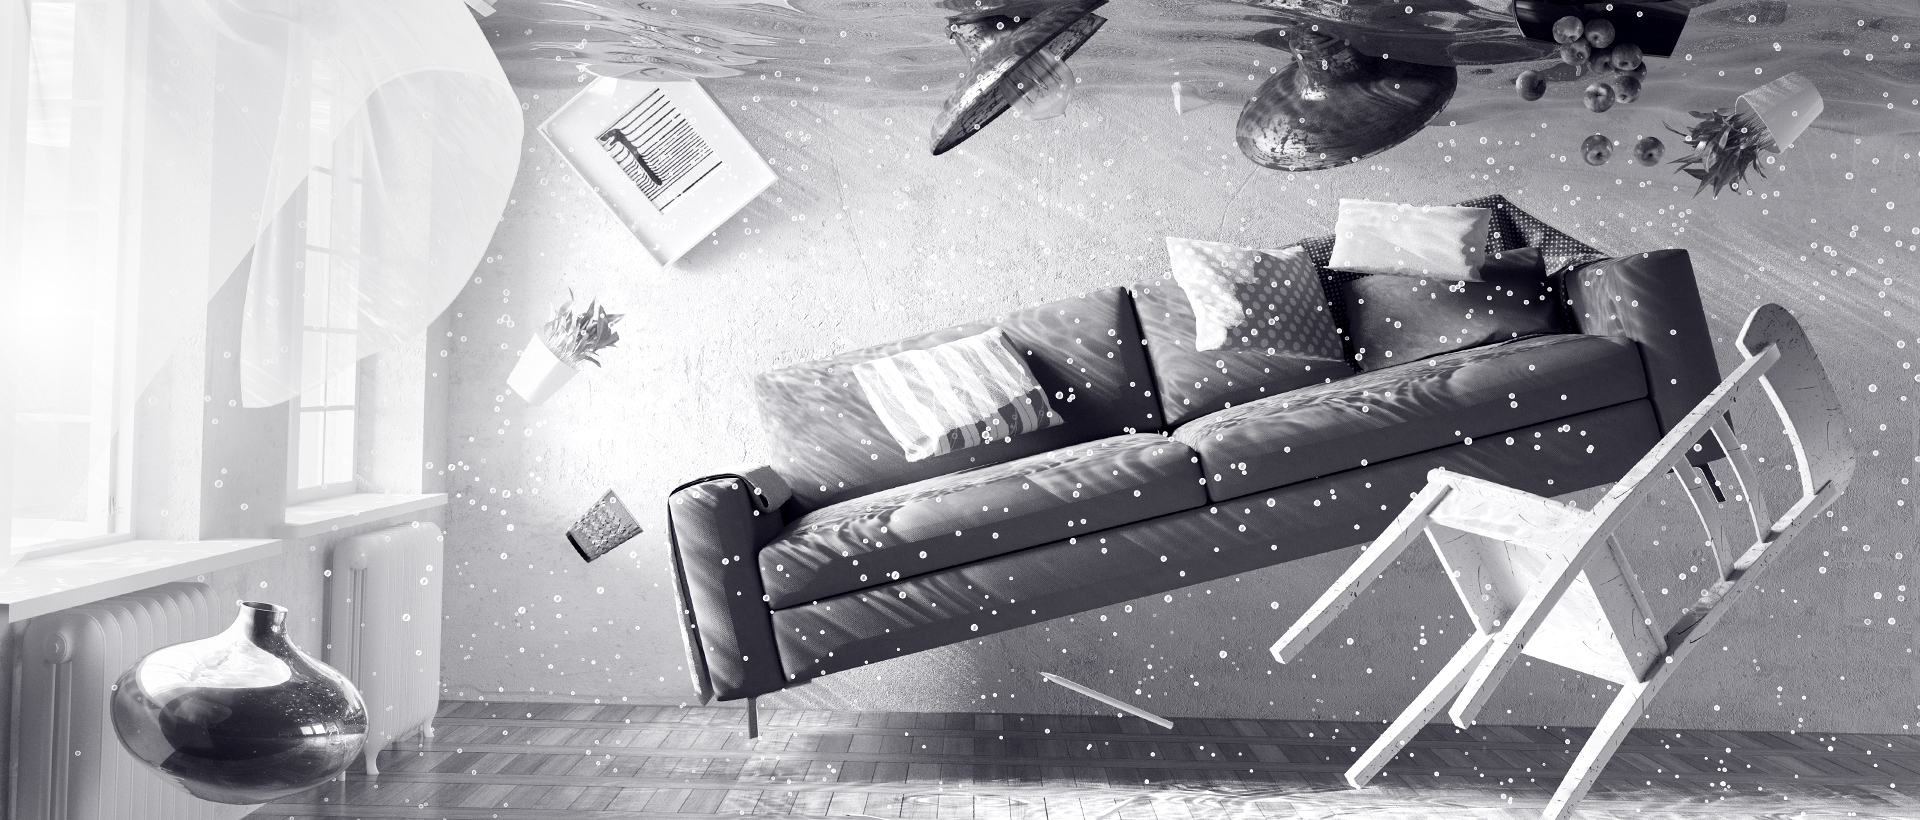 Destroying the Home - lounge set exploding